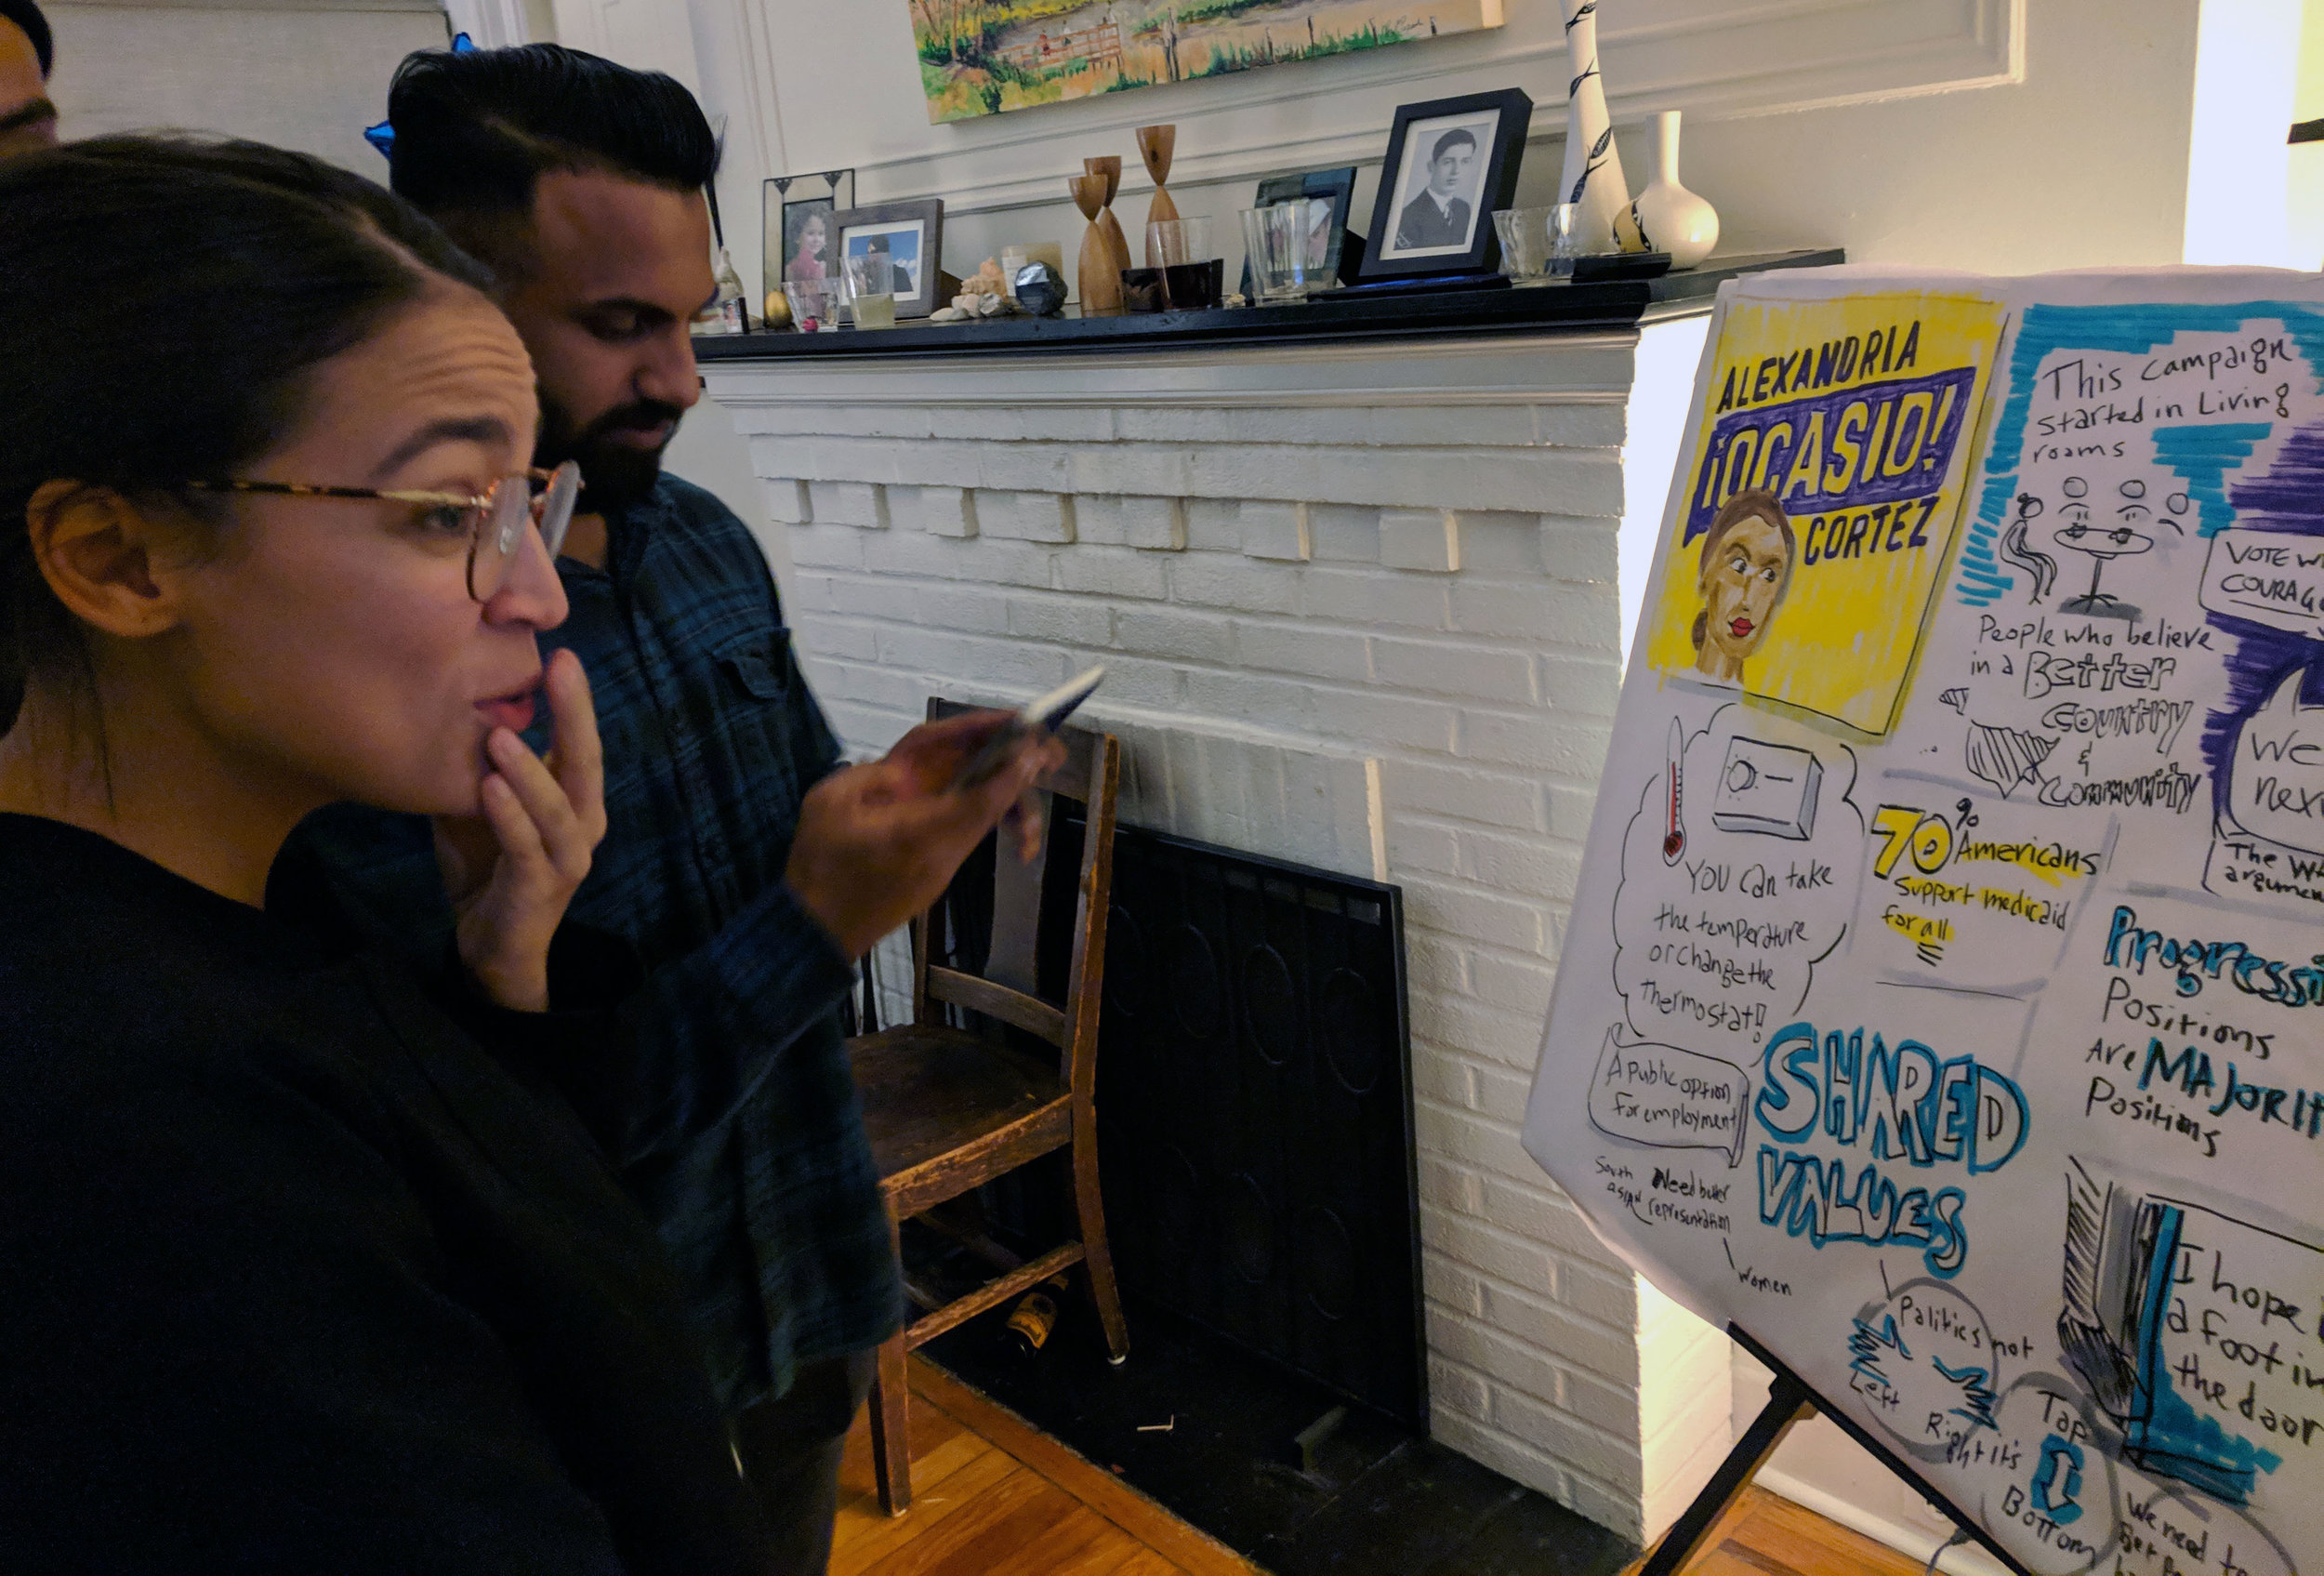 Representative Ocasio-Cortez soaking up the visual listening piece I created during her talk at a political event in Queens. Recently I have been doing a lot of work to support political candidates I wanted to see elected. Art materials: markers and paper.